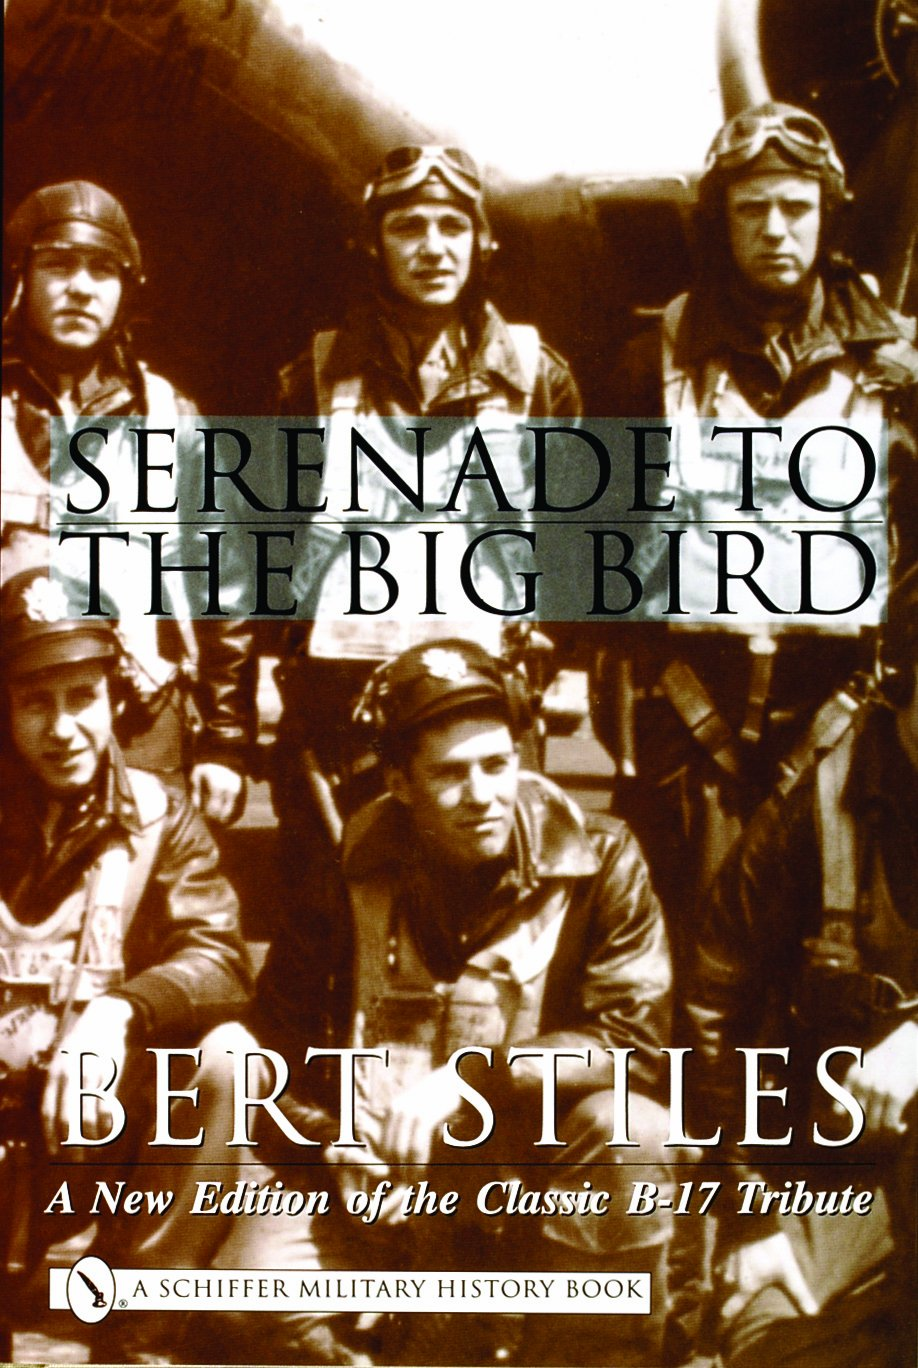 Serenade to the Big Bird (Schiffer Military History) Bert Stiles